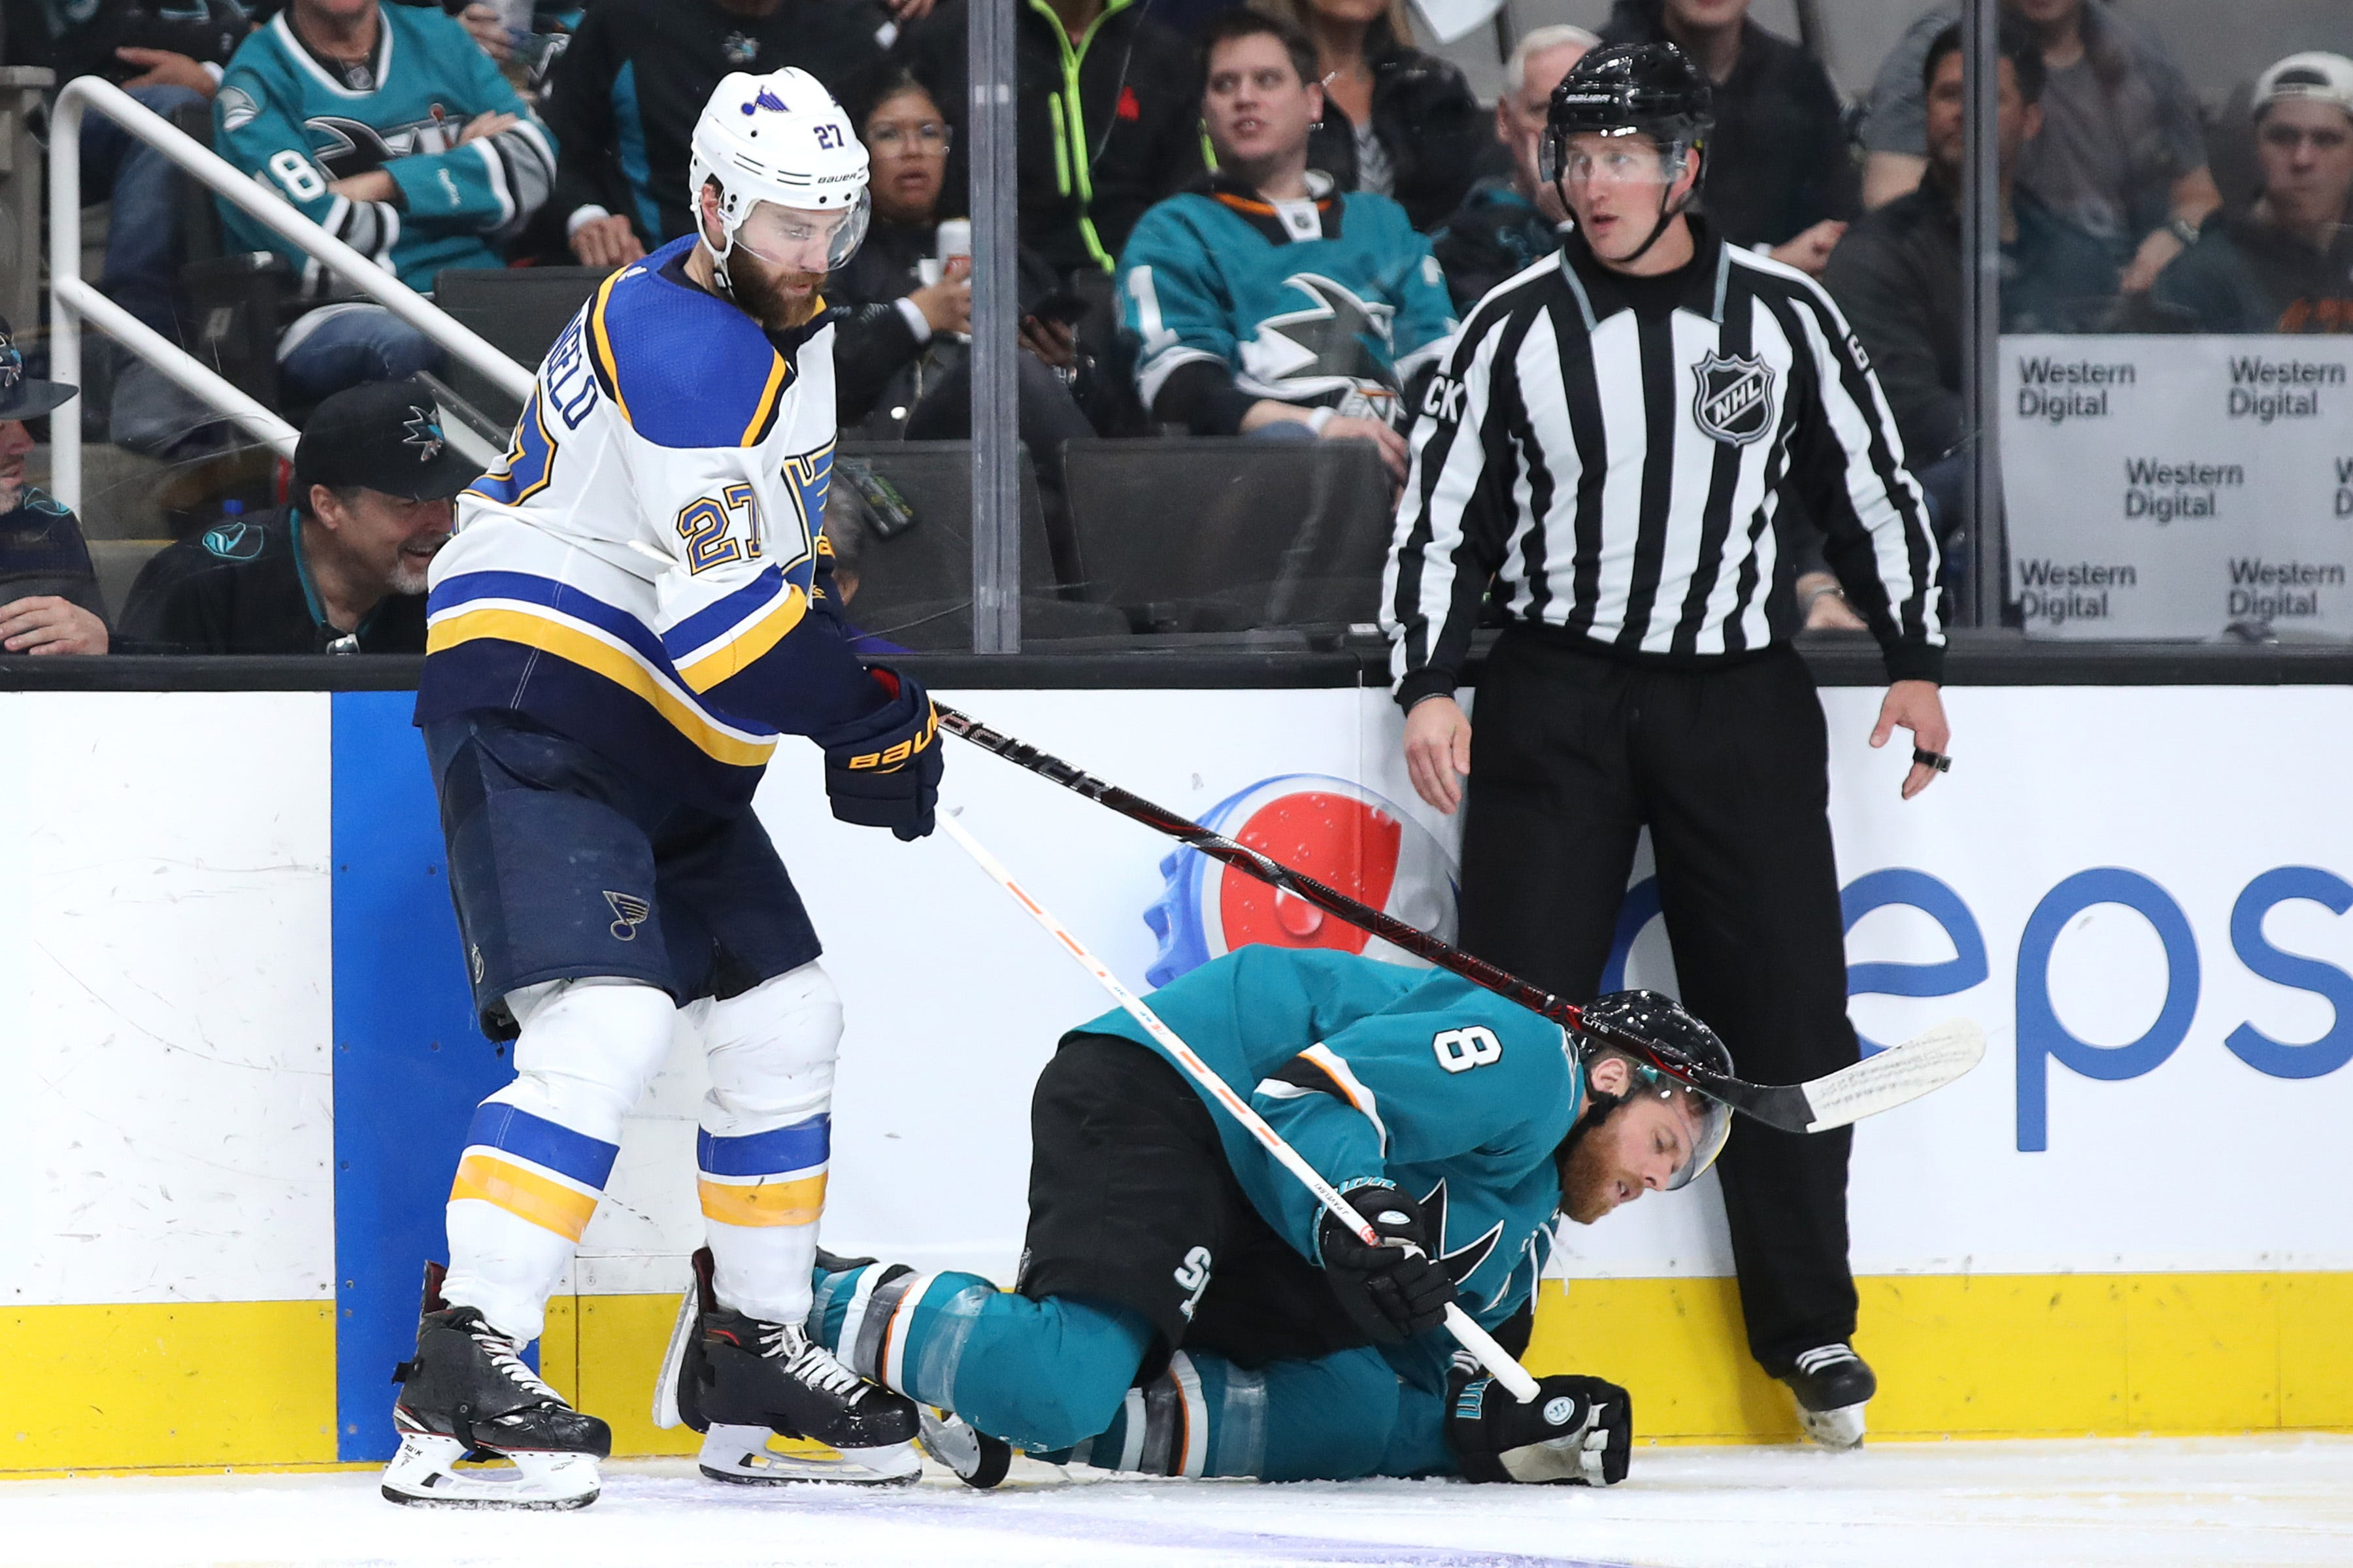 San Jose Sharks dealing with key injuries heading into Game 6 against St. Louis Blues